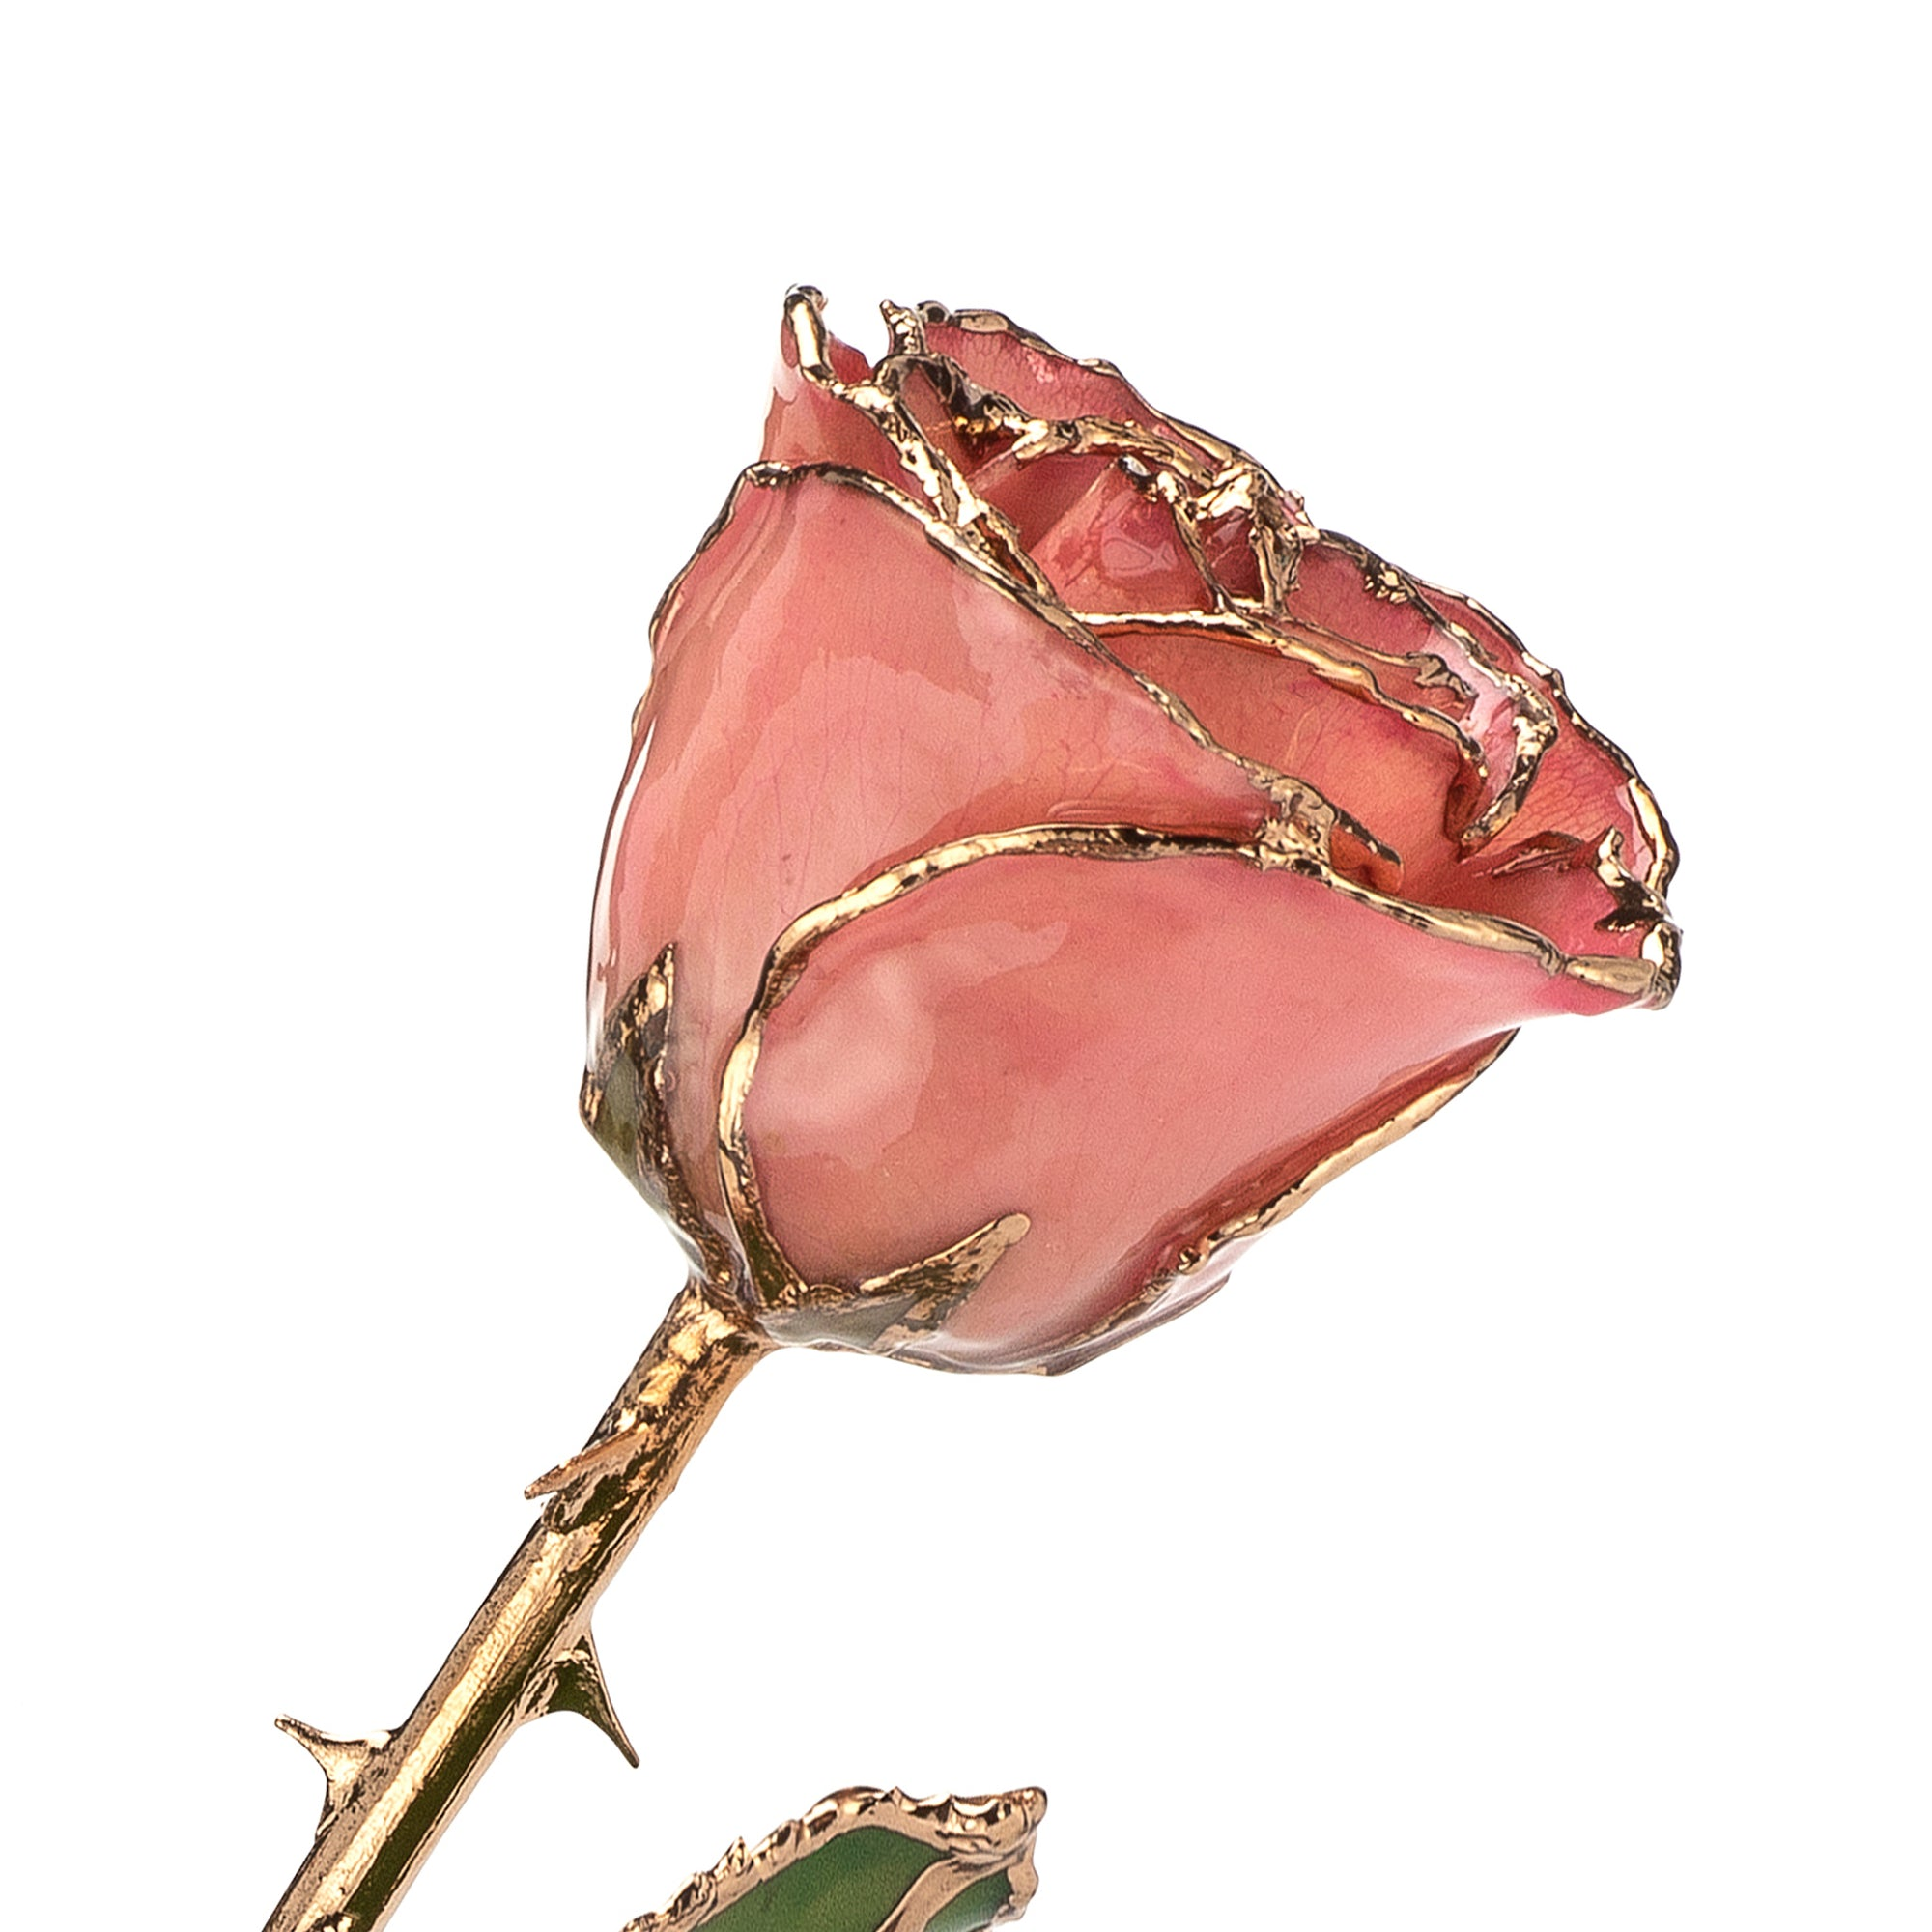 24K Gold Trimmed Forever Rose with Pink Petals. View of Stem, Leaves, and Rose Petals and Showing Detail of Gold Trim